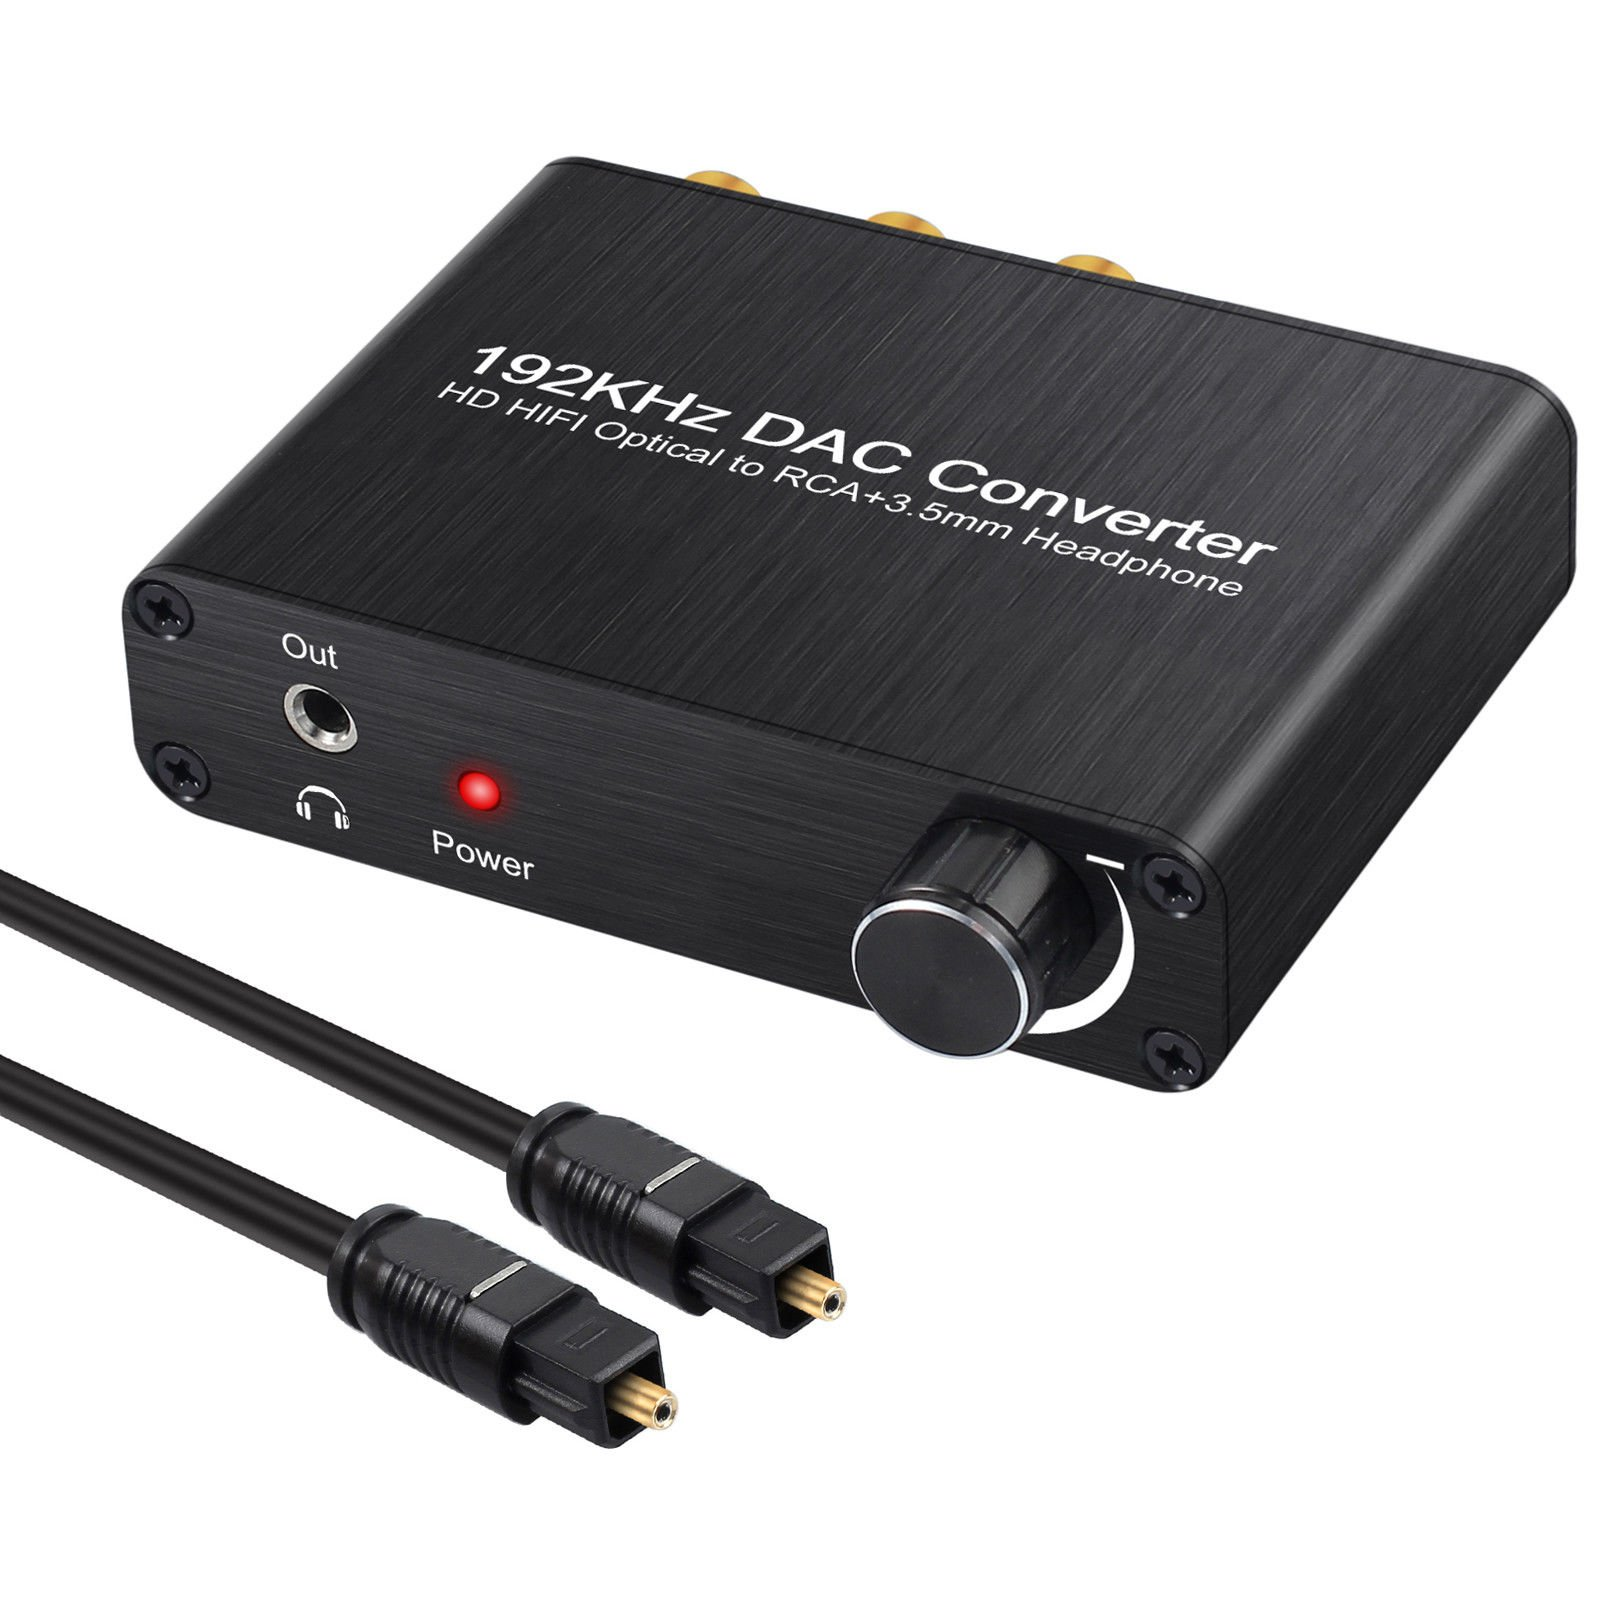 AUTOUTLET 192kHz DAC Converter Digital Audio Decoder Optical/Coaxial/Toslink to RCA L/R + 3.5MM Headphone with Volume Control Knob Support Dolby AC3/DTS for Amplifier Soundbar HDTV DVD PS3